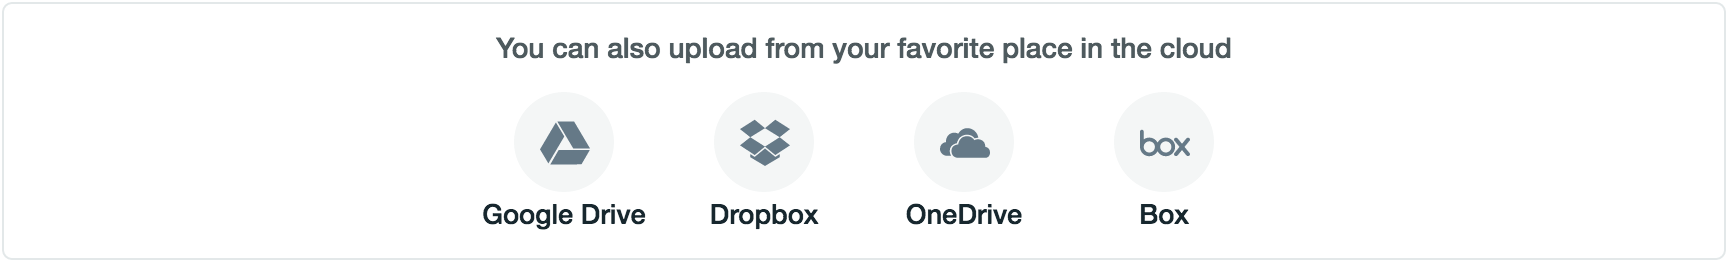 the google drive, dropbox, one drive, and box icon options in the upload menu